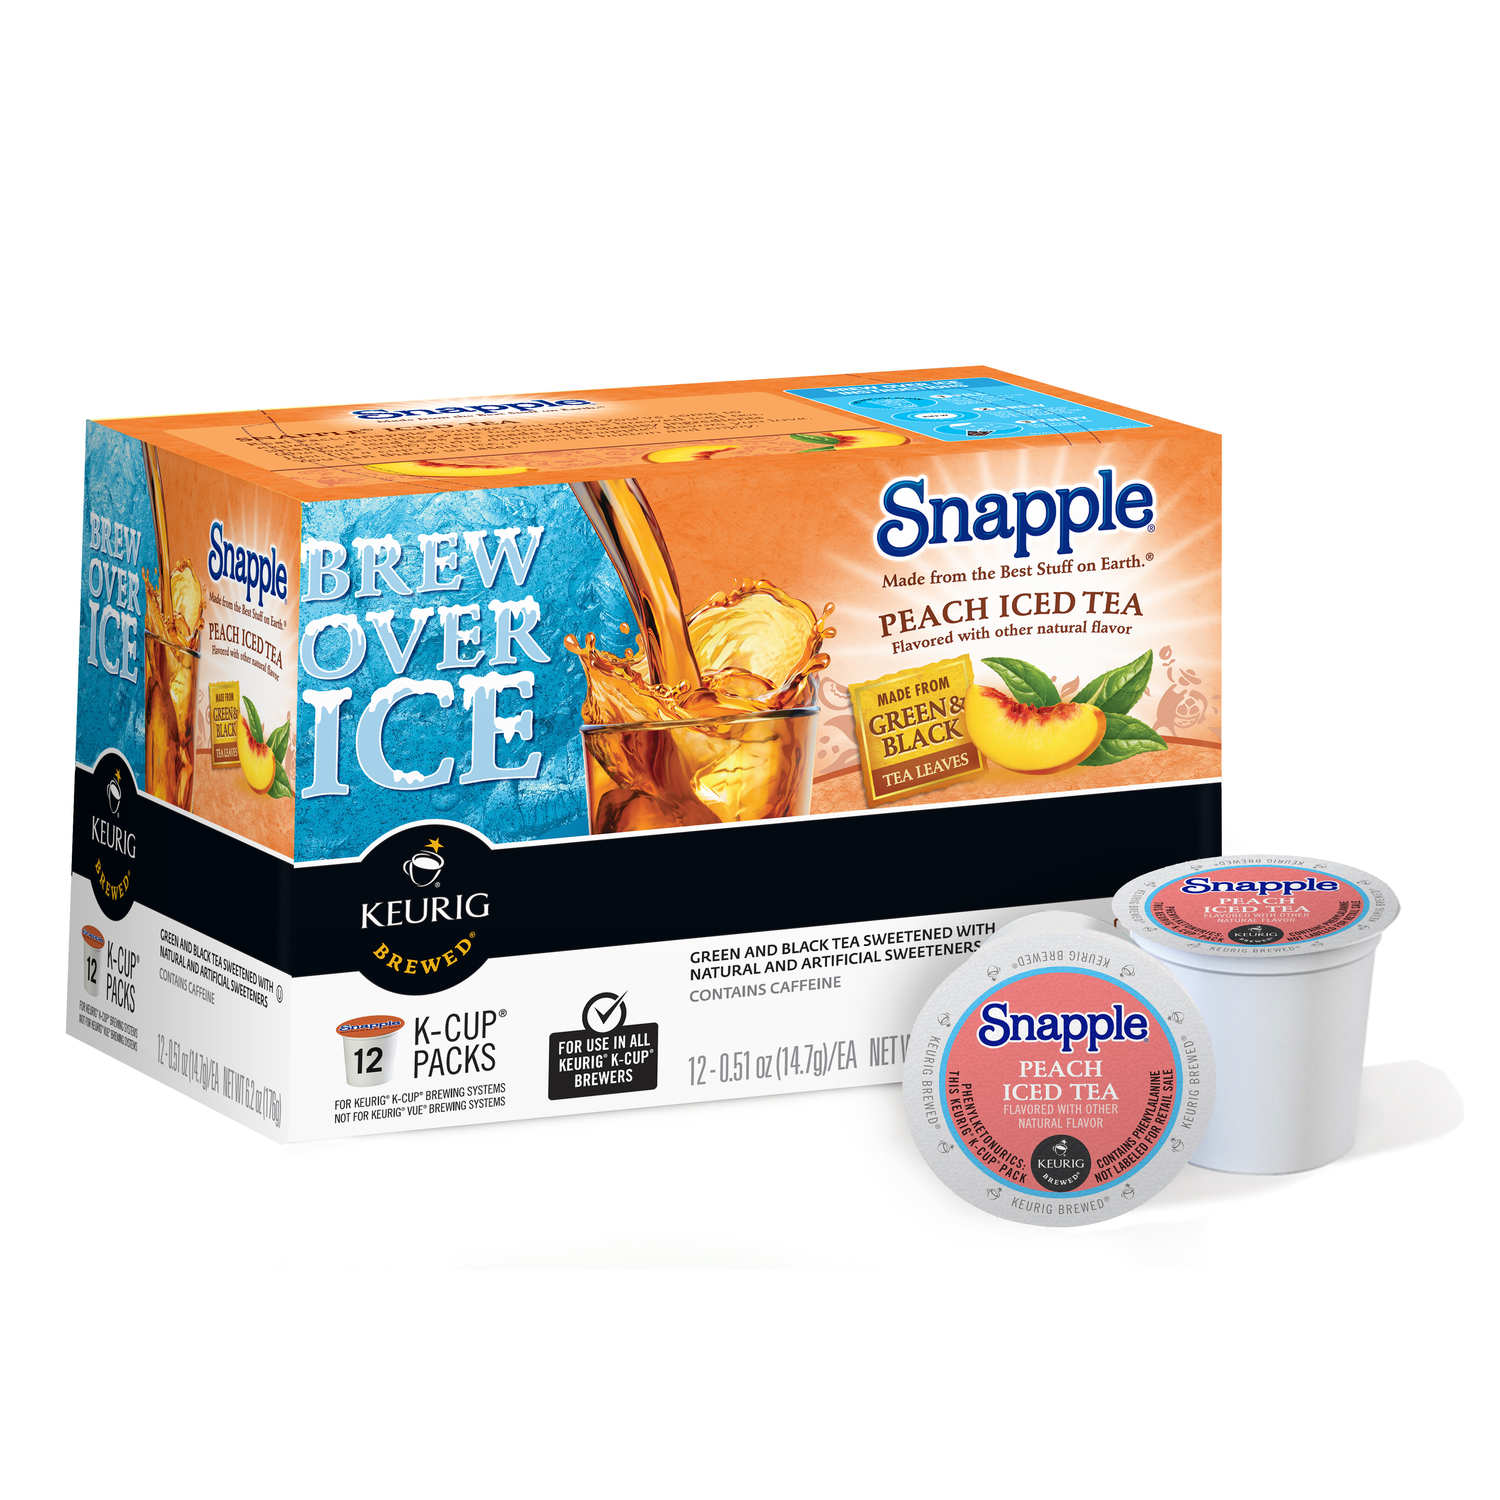 Keurig  Snapple  Peach Iced Tea  Tea K-Cups  12 pk